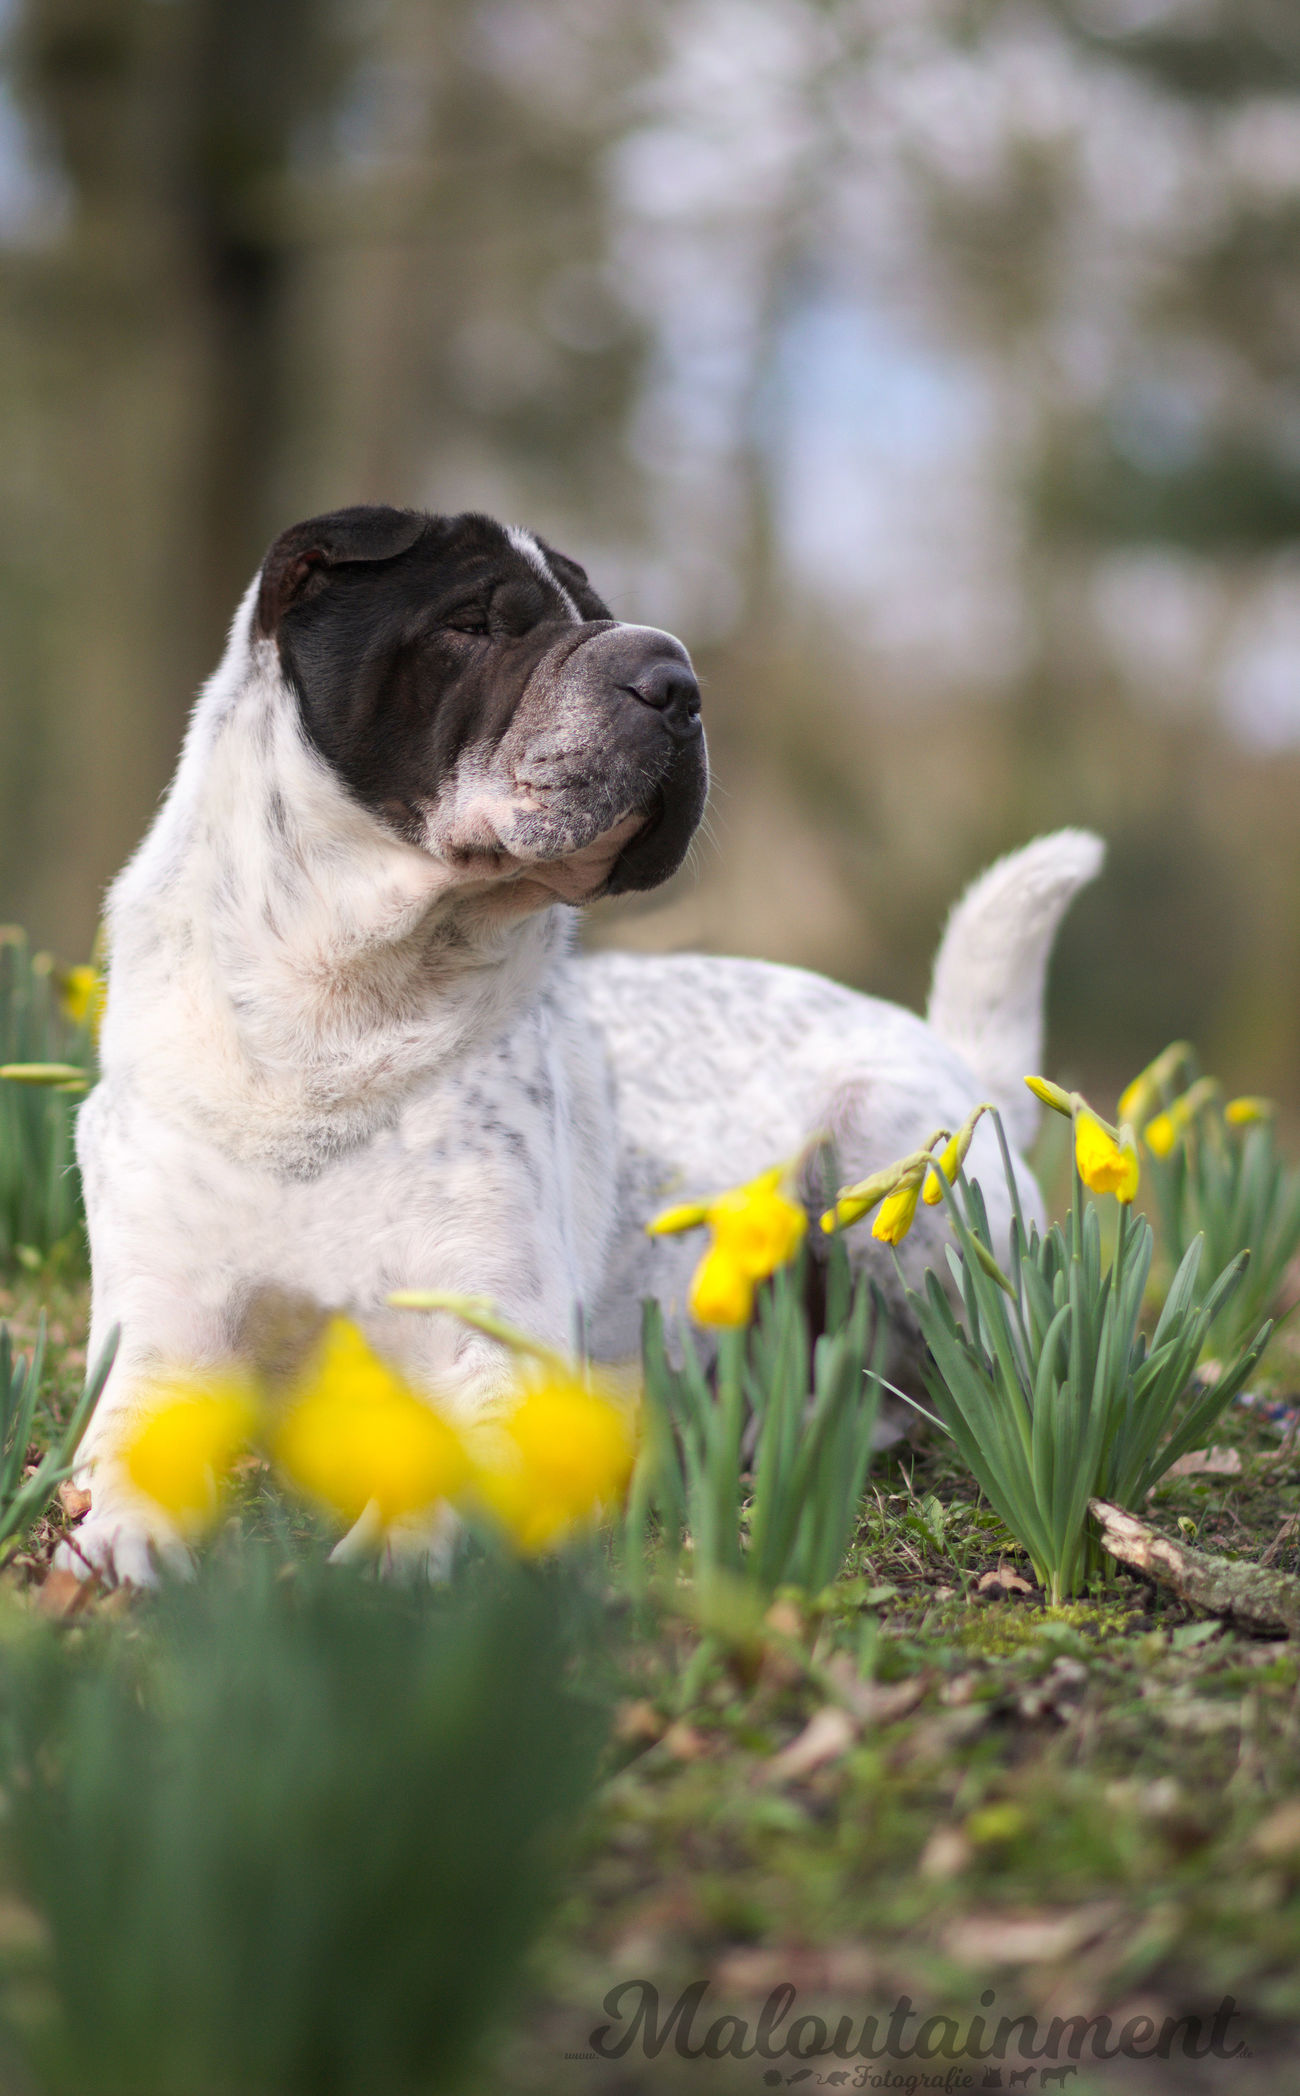 Spring Frühling Frühlingserwachen Frühlingsblümchen Celle One Animal Outdoors No People Dog Hund Hundefotografie Dog Photography Shar Pei Flowers Blumen Blümchen  Osterglocke Nature Natur